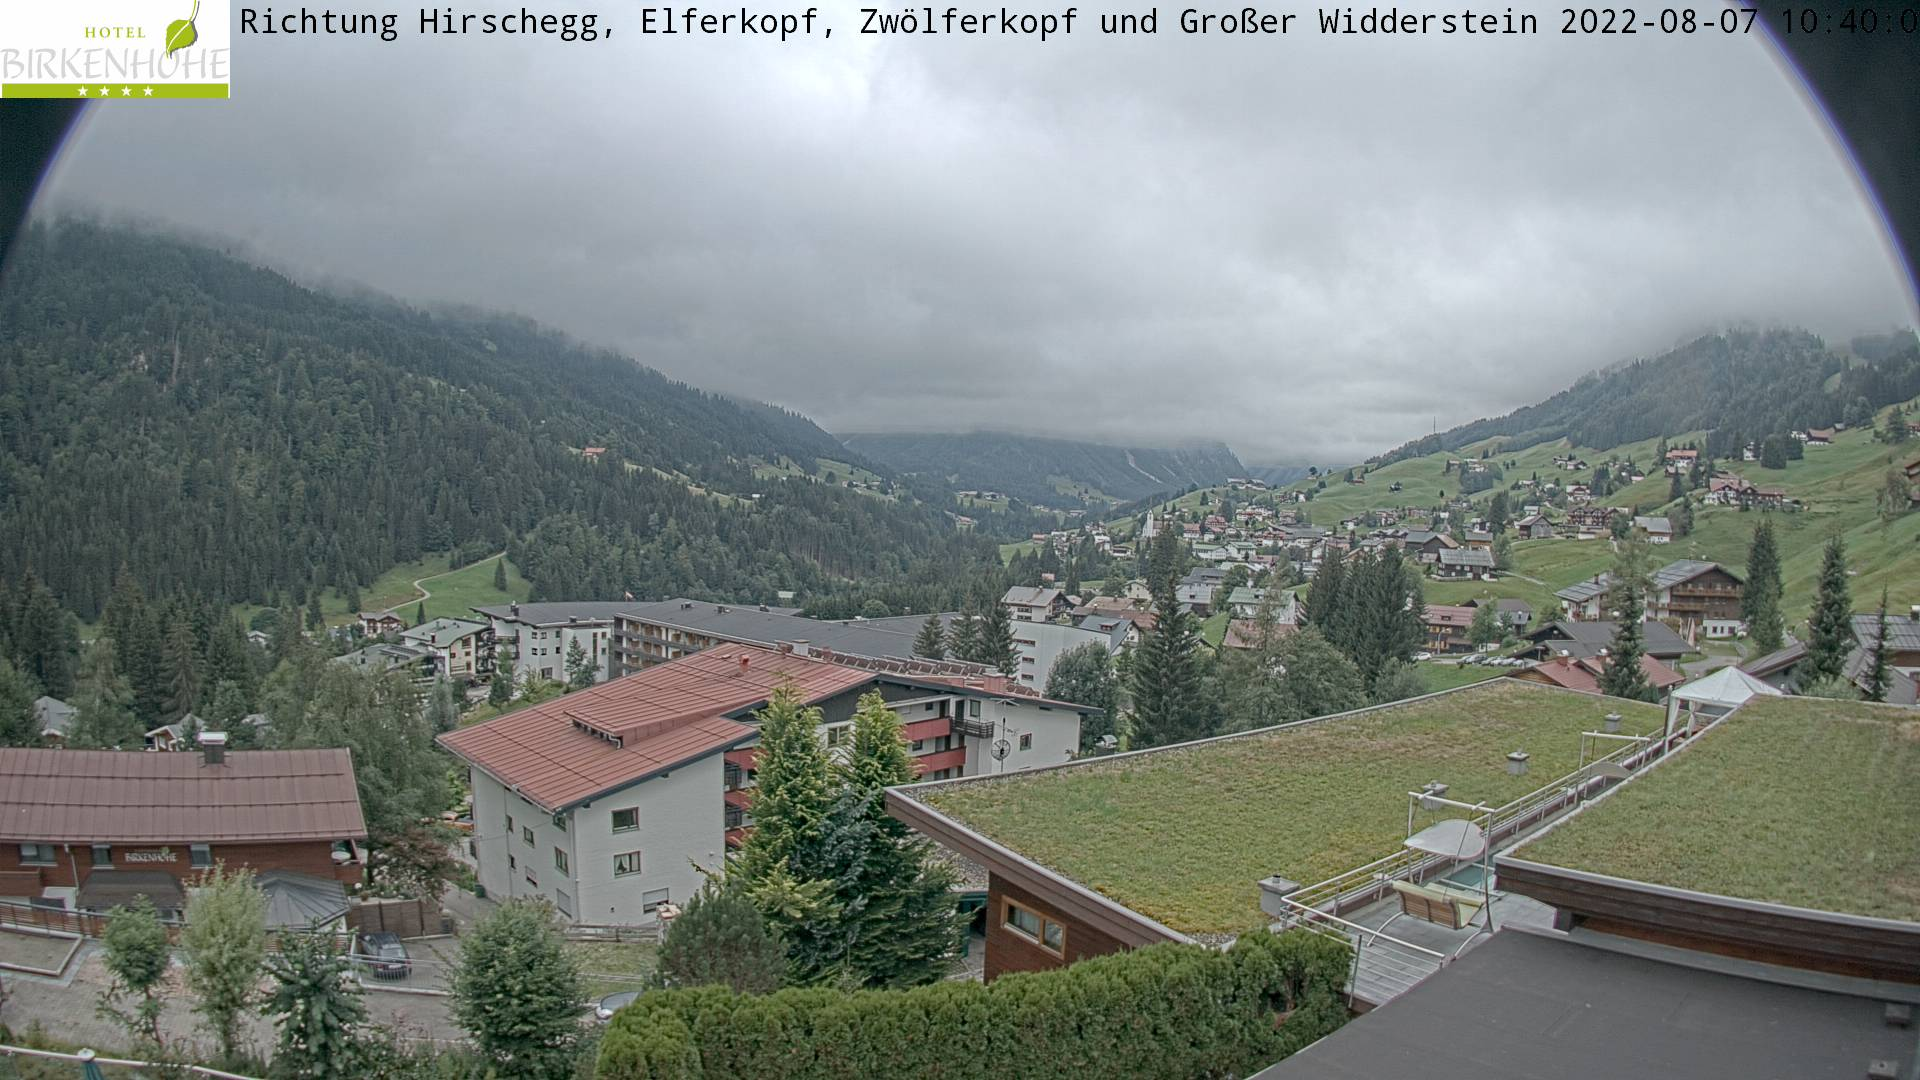 Webcam Hotel Birkenhöhe